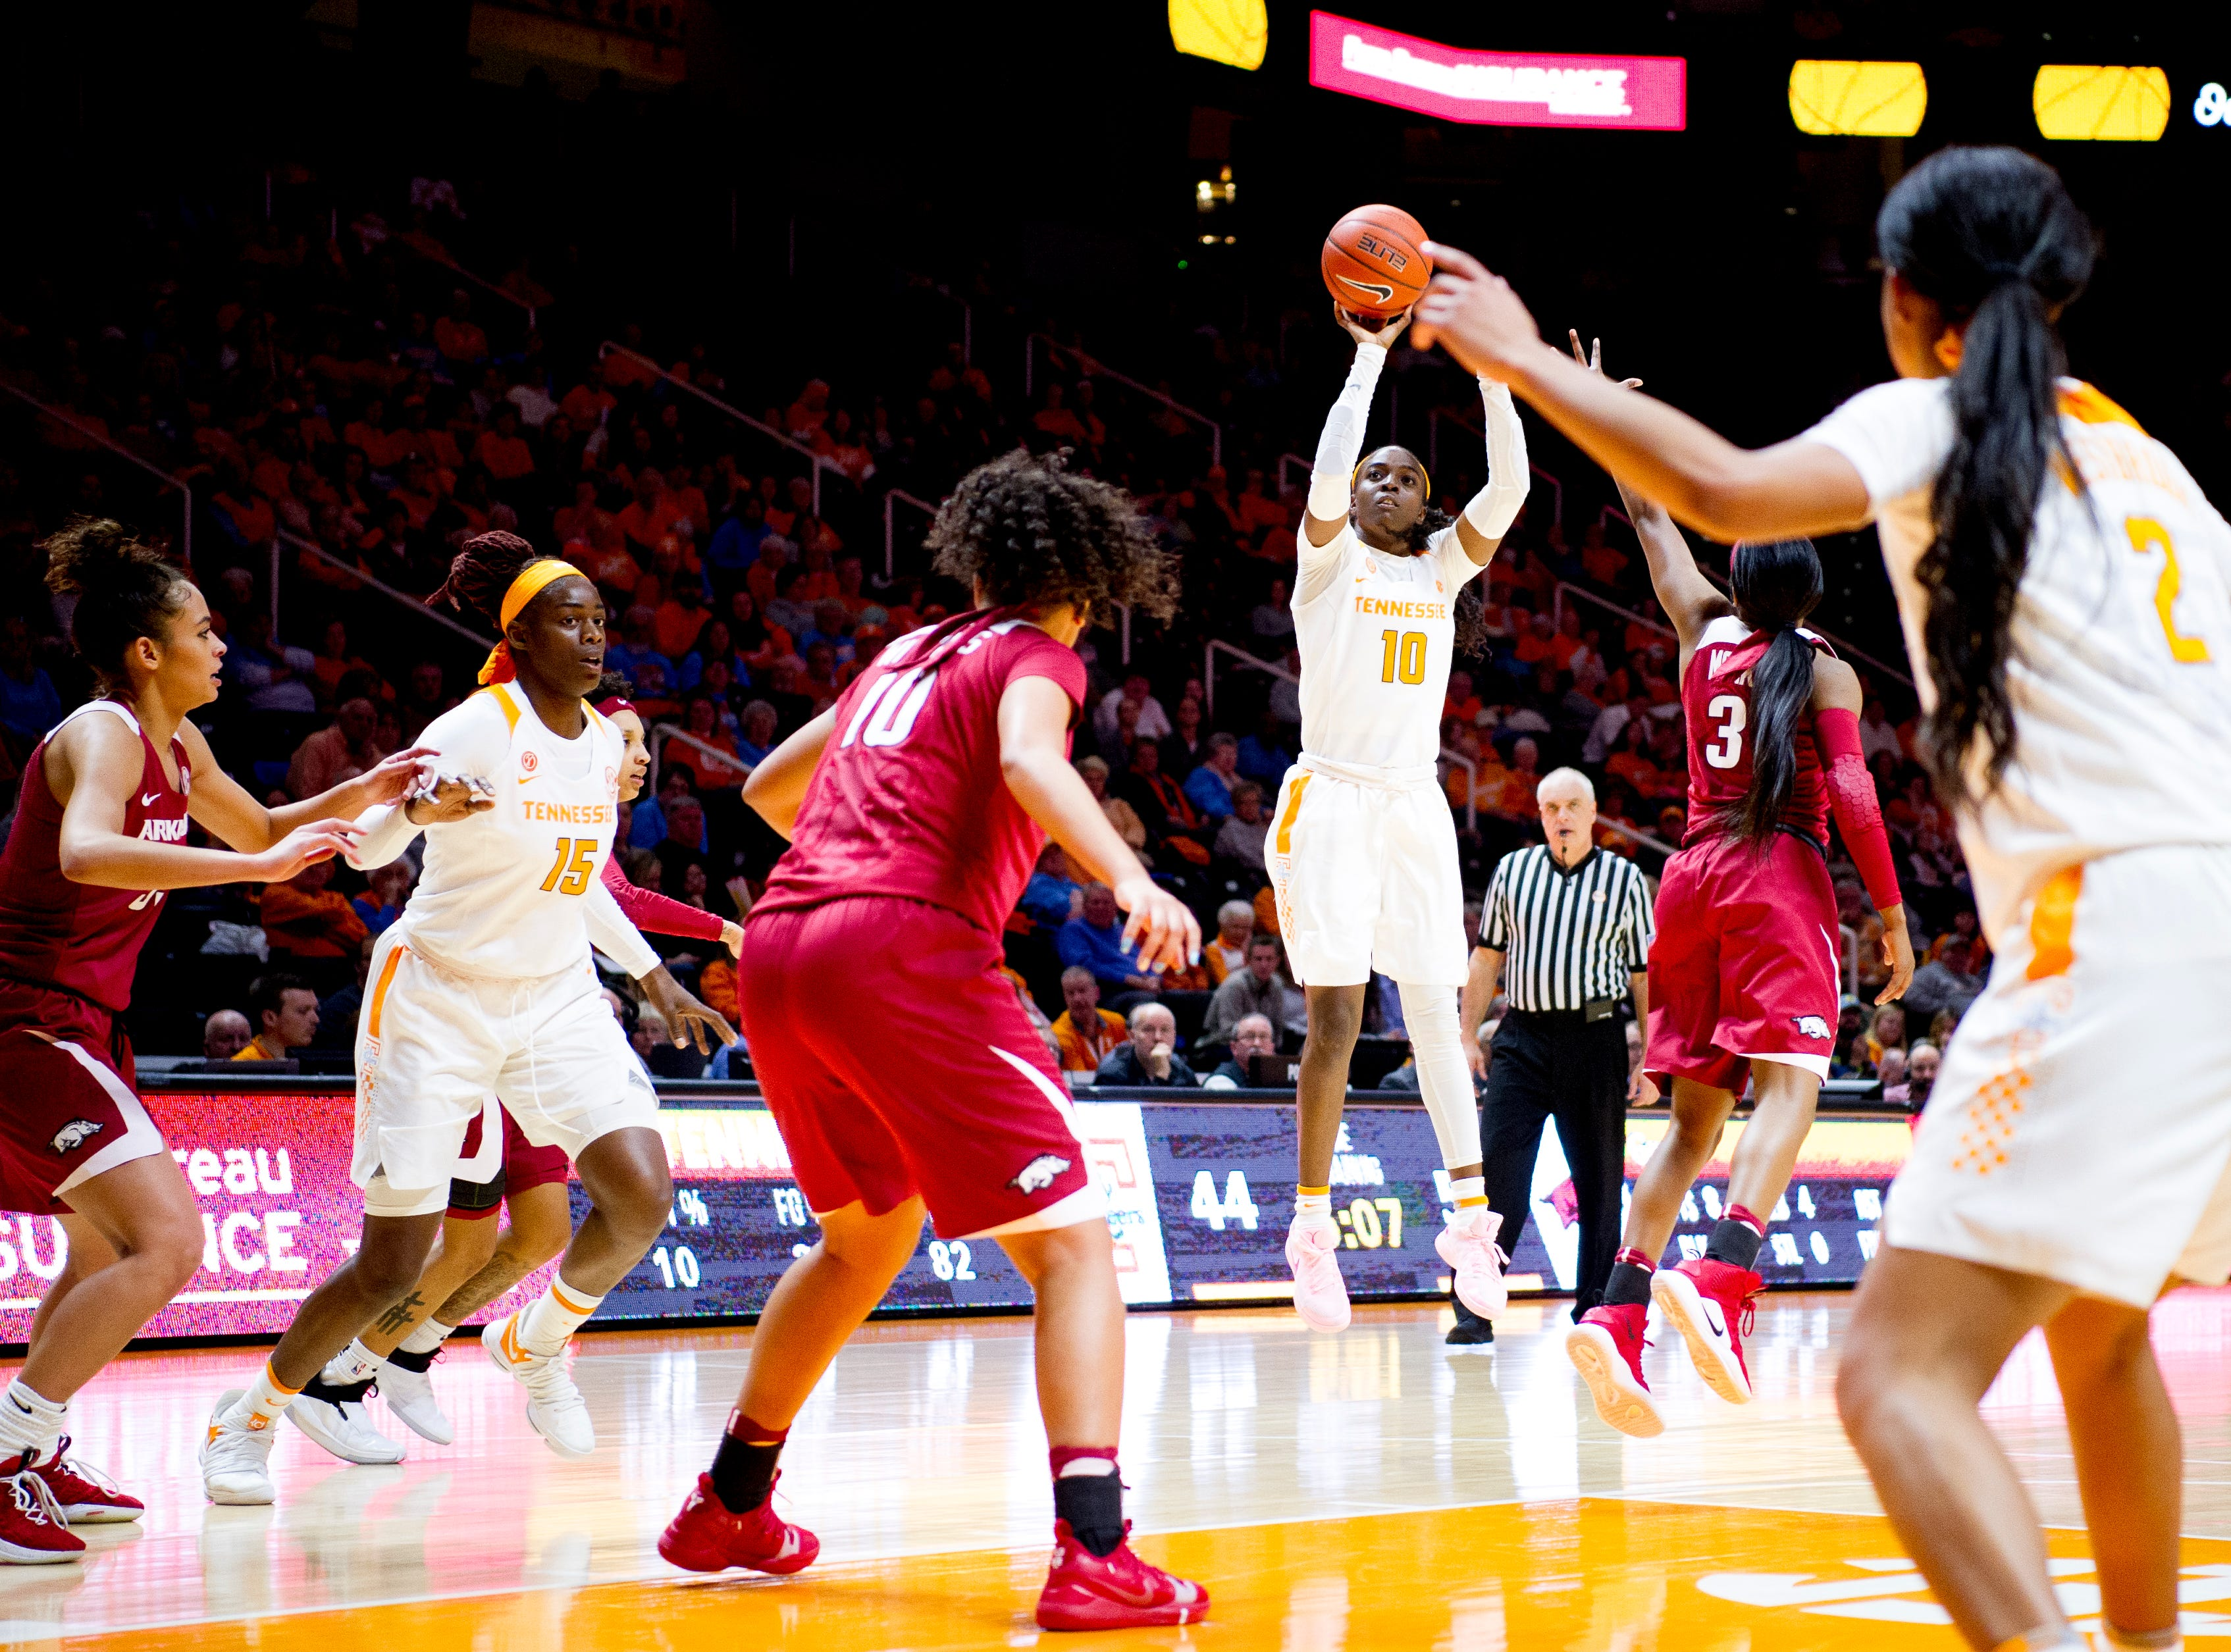 Tennessee guard/forward Meme Jackson (10) shoots the ball during a game between Tennessee and Arkansas at Thompson-Boling Arena in Knoxville, Tennessee on Monday, January 21, 2019.